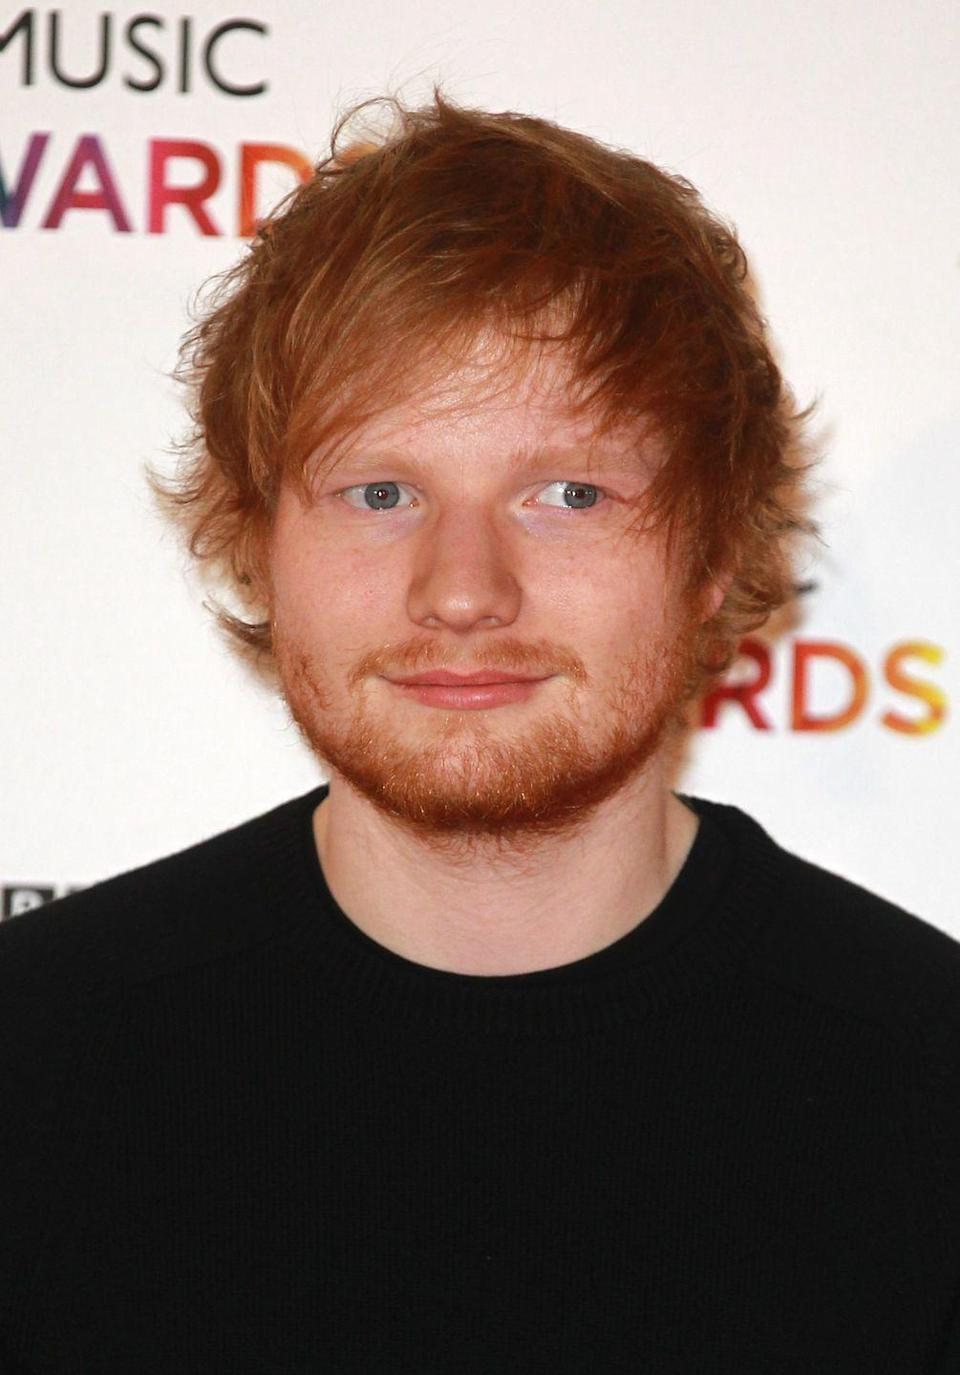 """<p><a href=""""https://www.goodhousekeeping.com/life/news/a43368/ed-sheeran-doppleganer/"""" rel=""""nofollow noopener"""" target=""""_blank"""" data-ylk=""""slk:Ed Sheeran"""" class=""""link rapid-noclick-resp"""">Ed Sheeran</a> confirmed that <a href=""""https://metro.co.uk/2014/10/22/ed-sheeran-finally-admits-hit-song-dont-is-about-ellie-goulding-and-niall-horan-but-hes-totally-over-the-anger-now-4916079/"""" rel=""""nofollow noopener"""" target=""""_blank"""" data-ylk=""""slk:this song is about a messy breakup"""" class=""""link rapid-noclick-resp"""">this song is about a messy breakup</a> with his former girlfriend and fellow musician Ellie Goulding, who reportedly cheated on Ed with Niall Horan from One Direction. Yikes. </p>"""